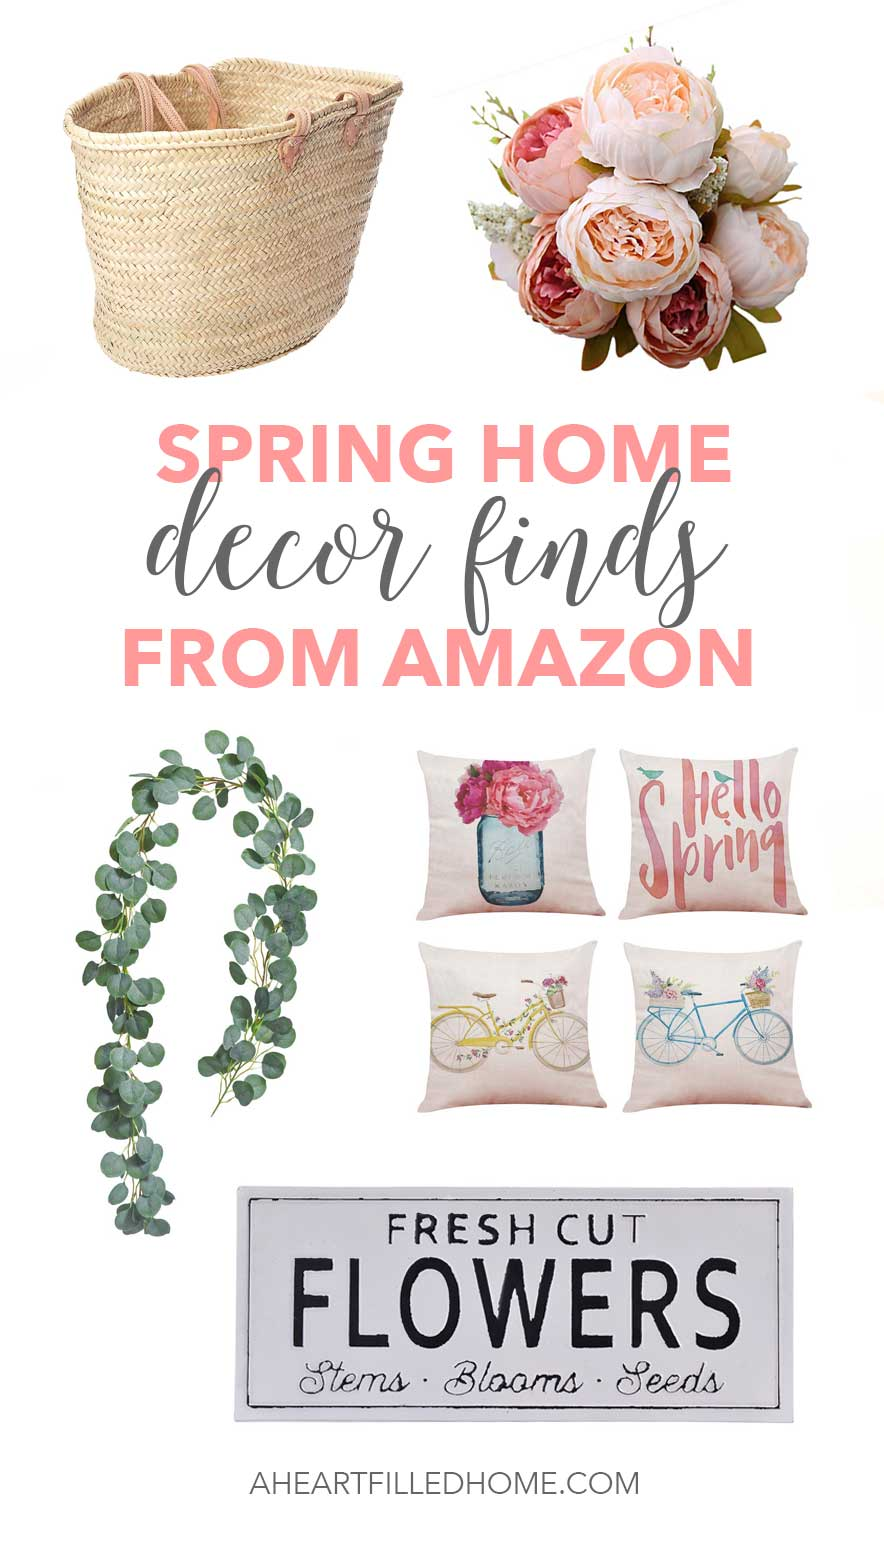 Spring Home Decor Finds from Amazon! from A Heart Filled Home